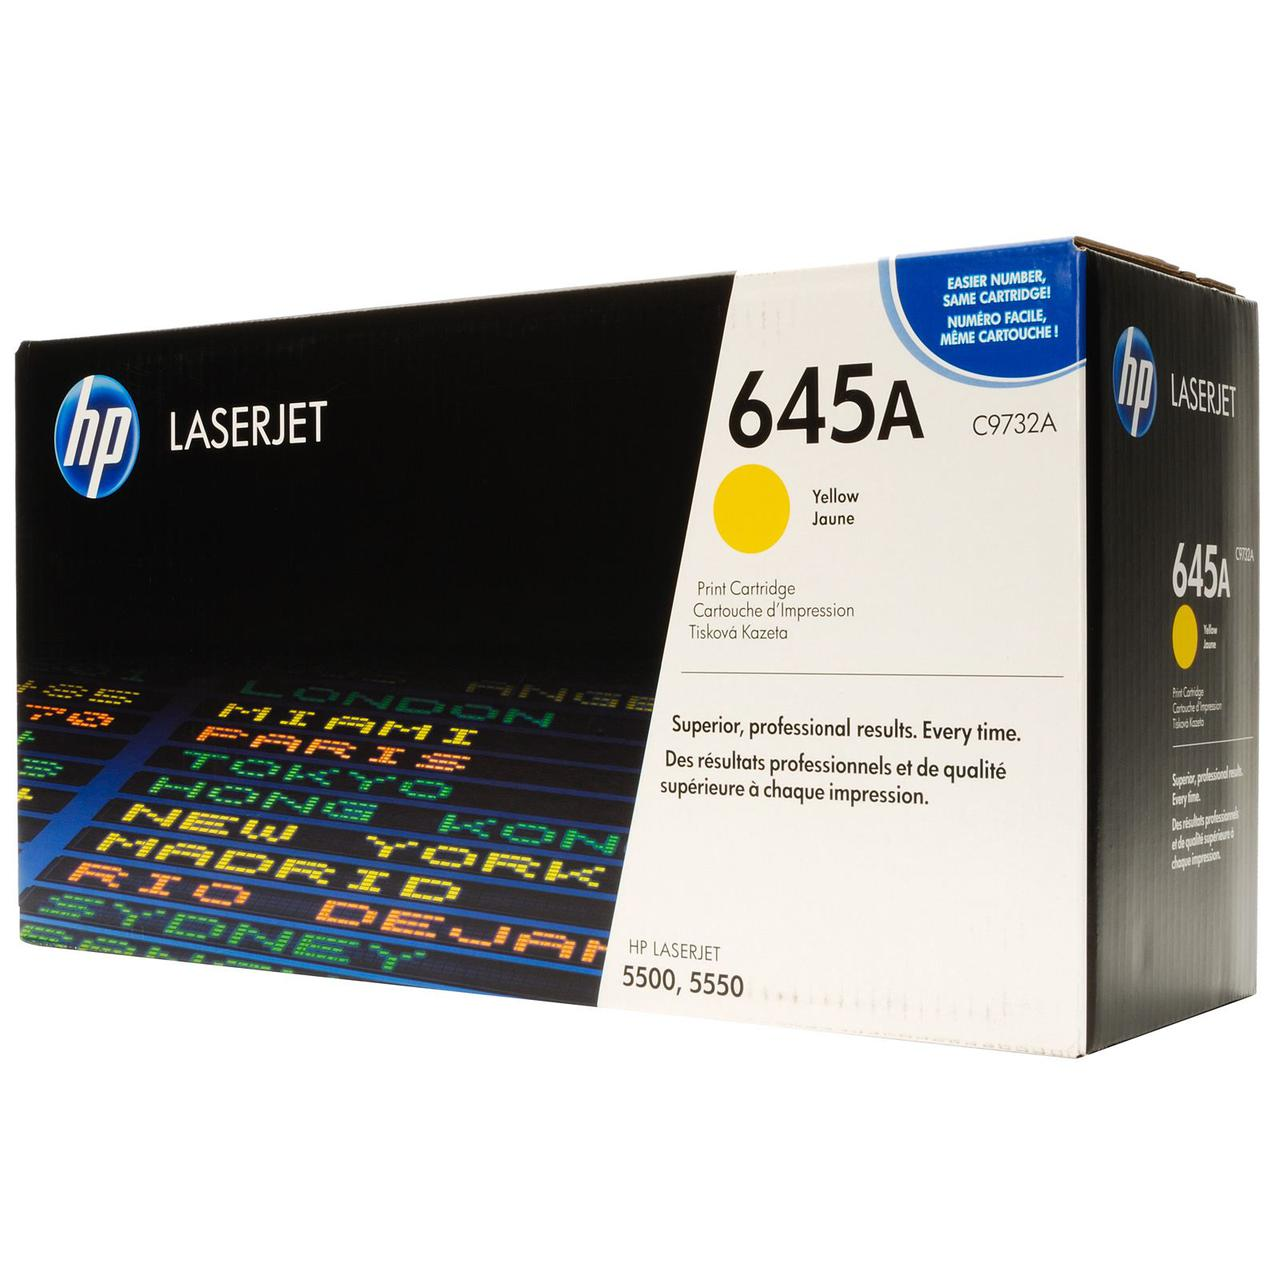 Картридж HP Laser/yellow C9732A